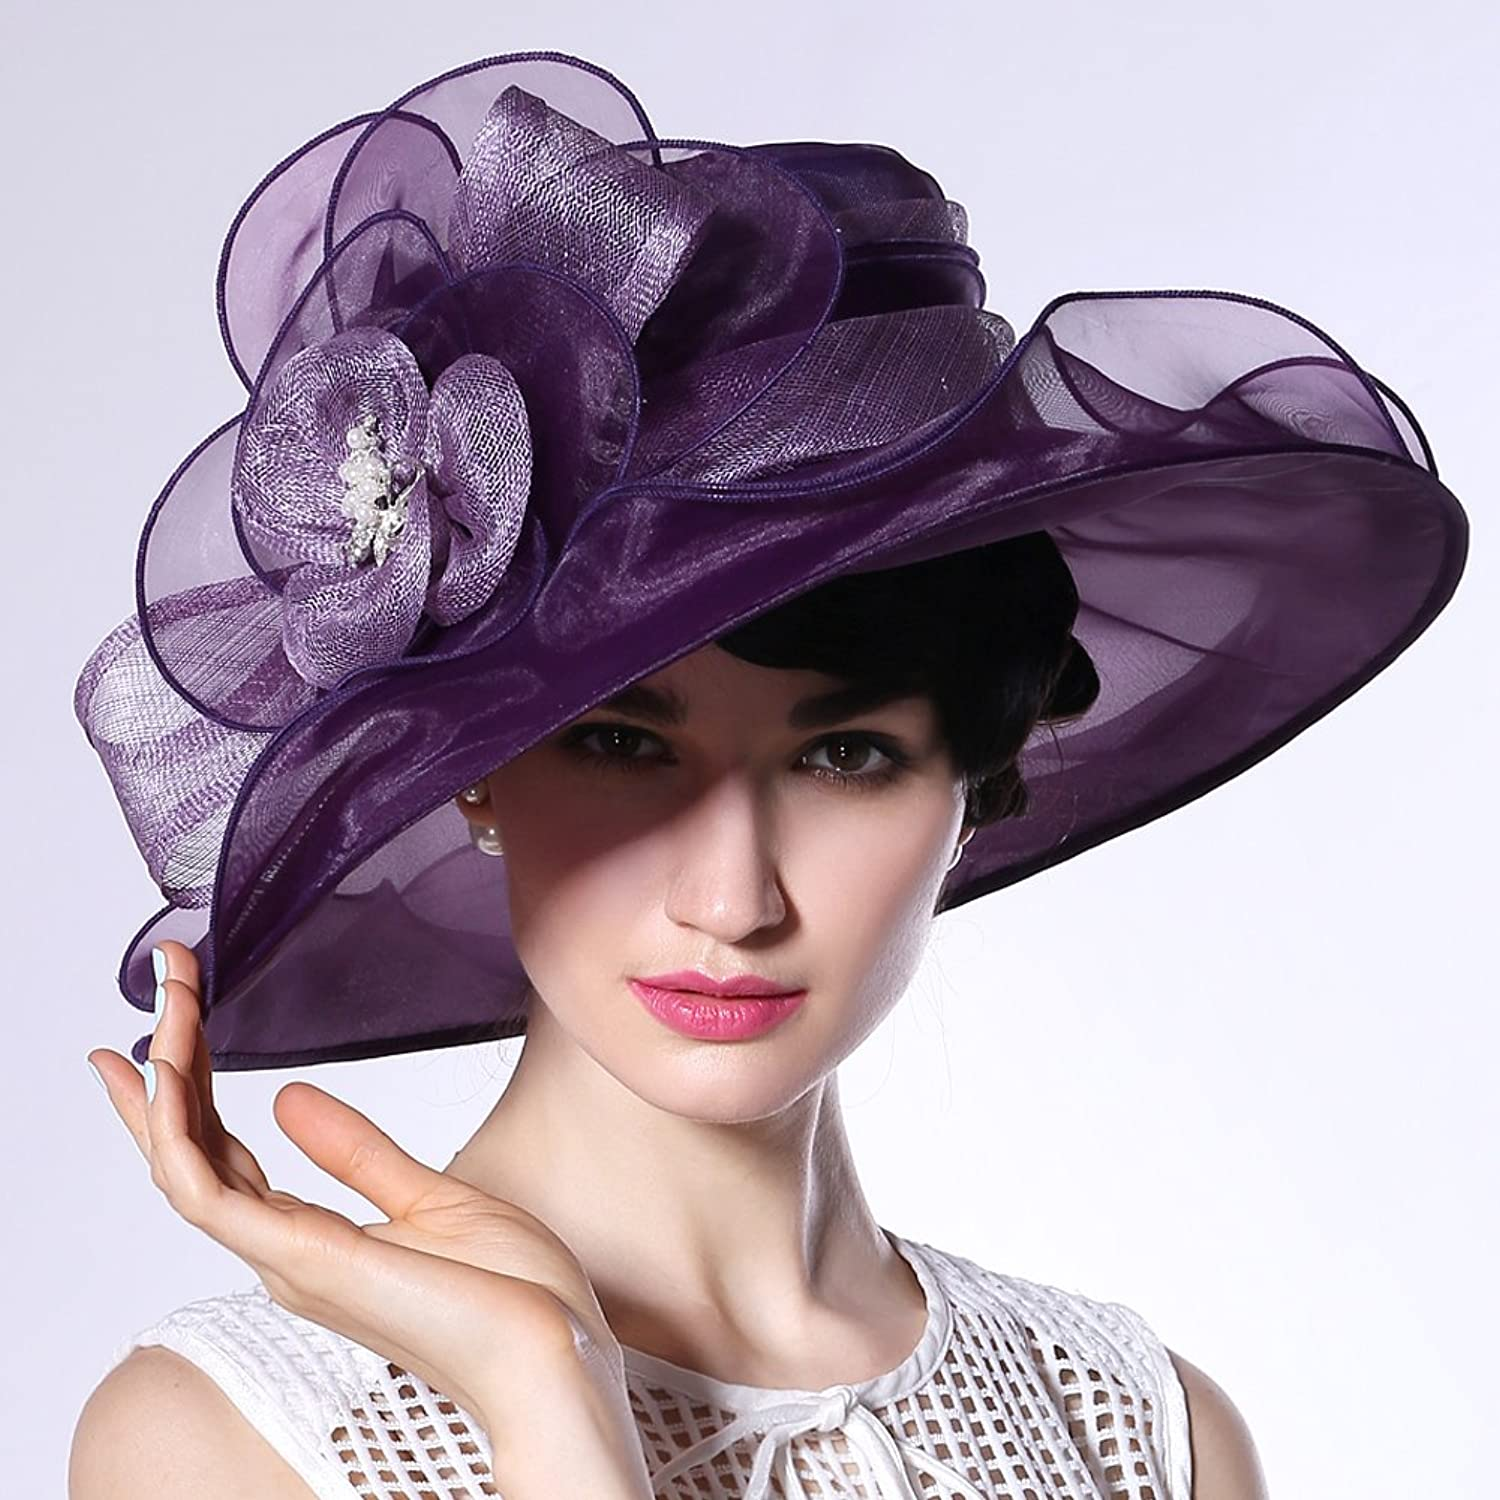 June's Young Sun Hats Organza Hats 100% Organza Special Design Fedoras Purple color